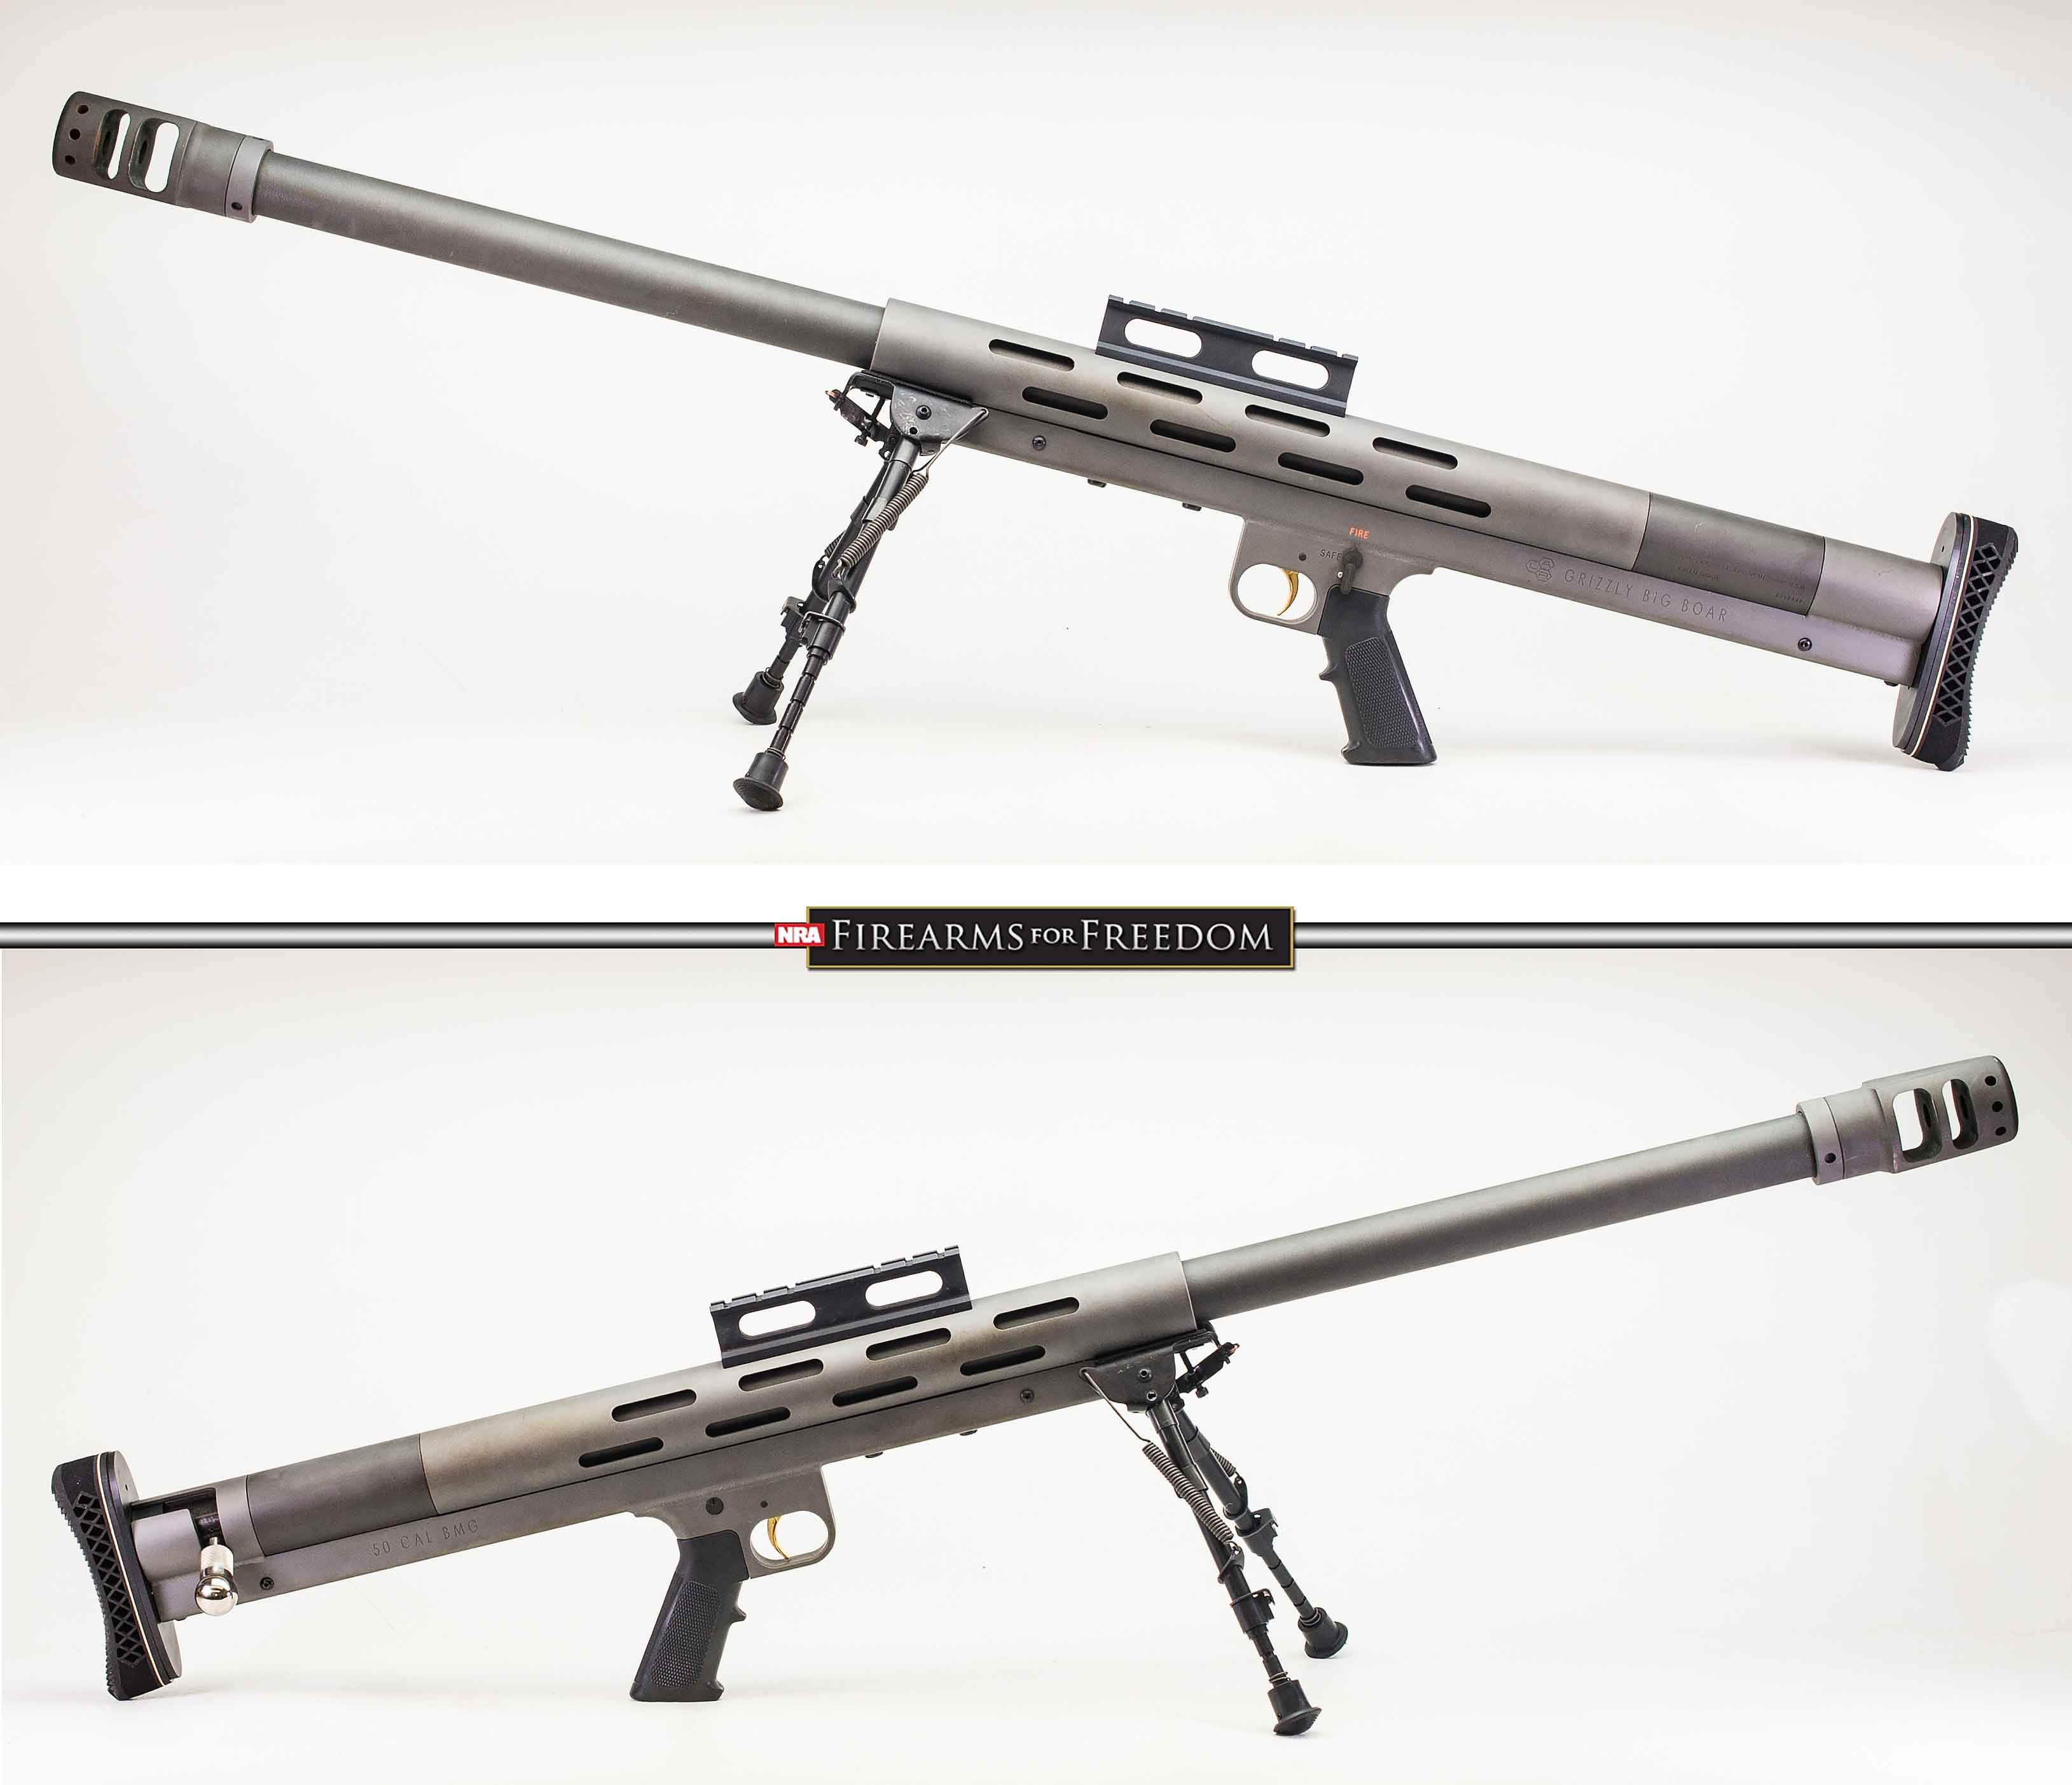 Lar Grizzly Big Boar 50 Bmg Auction Id 12488035 End Time Sep